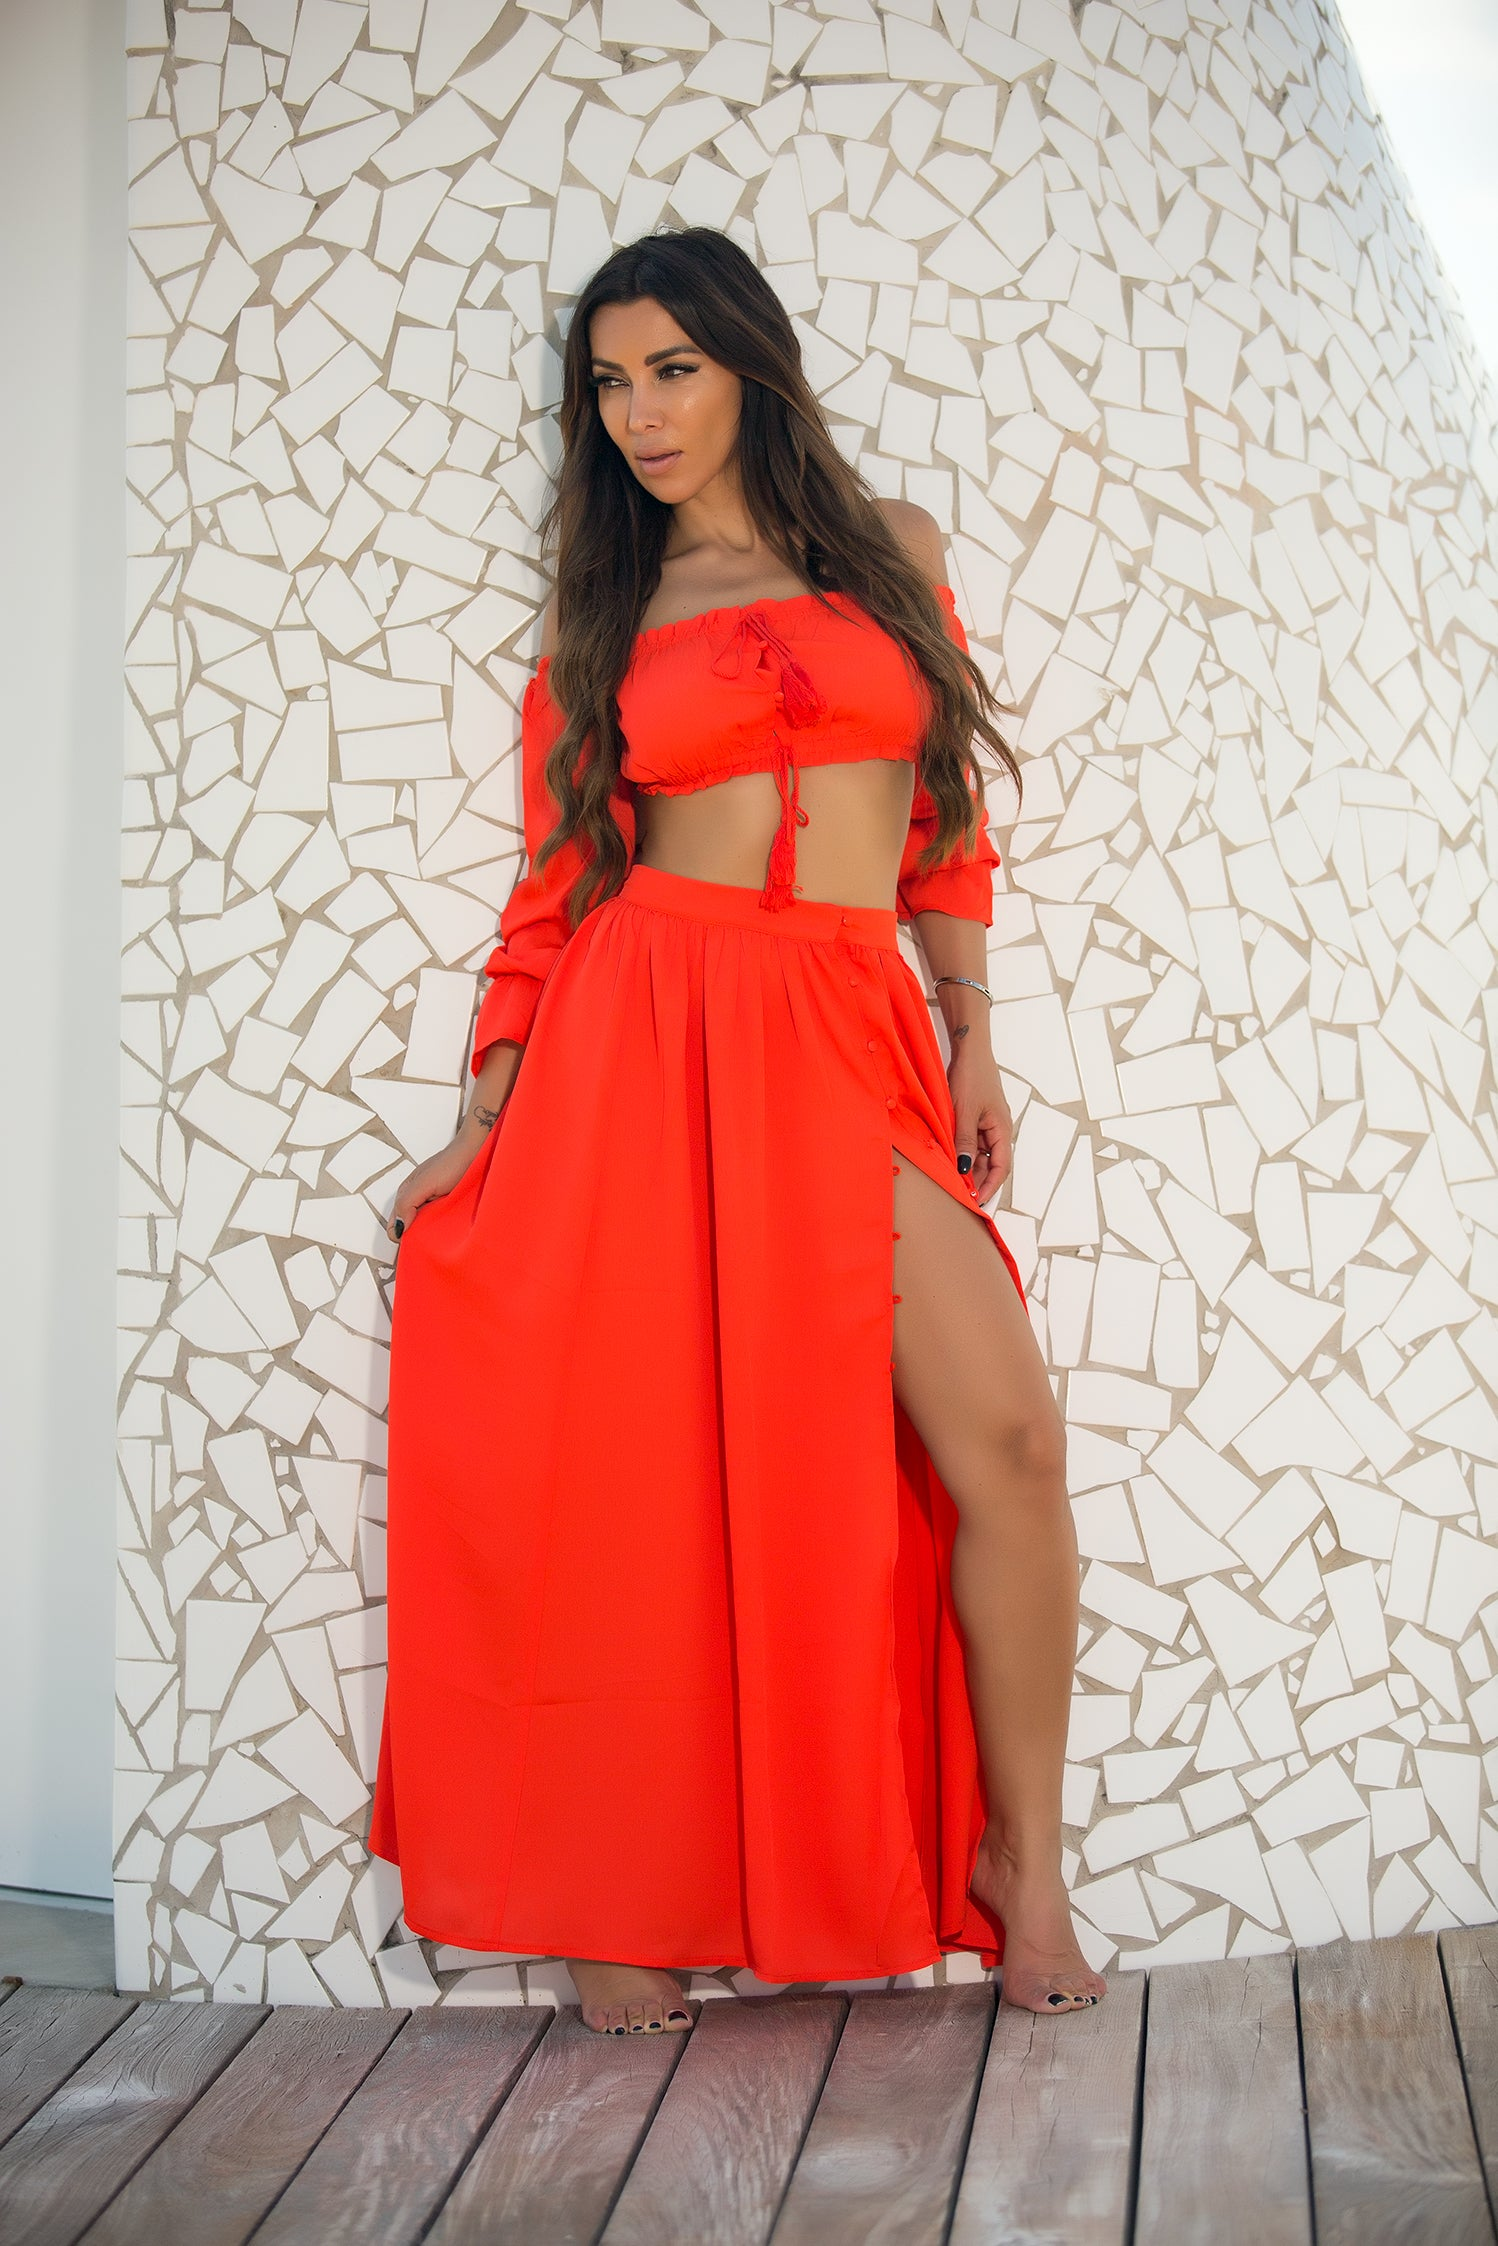 Frida - Gifted Off Shoulder Skirt Set - Red - Semai House Of fashion